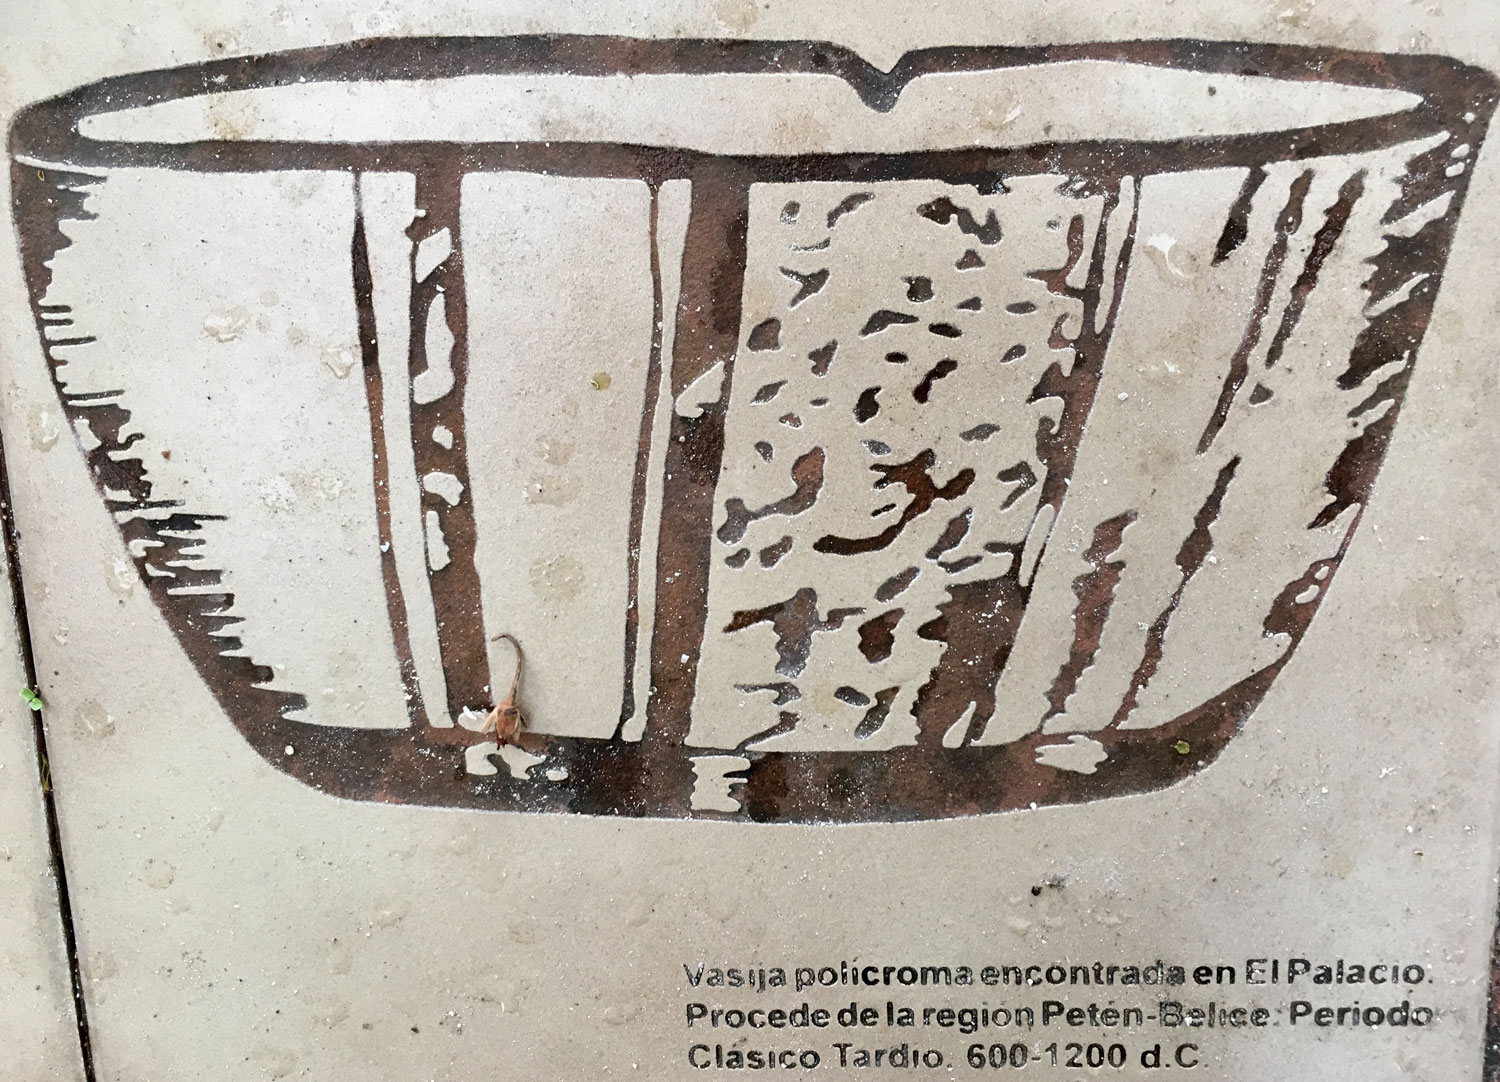 The INAH drawing of the pottery found on the site (600-1200 AD).